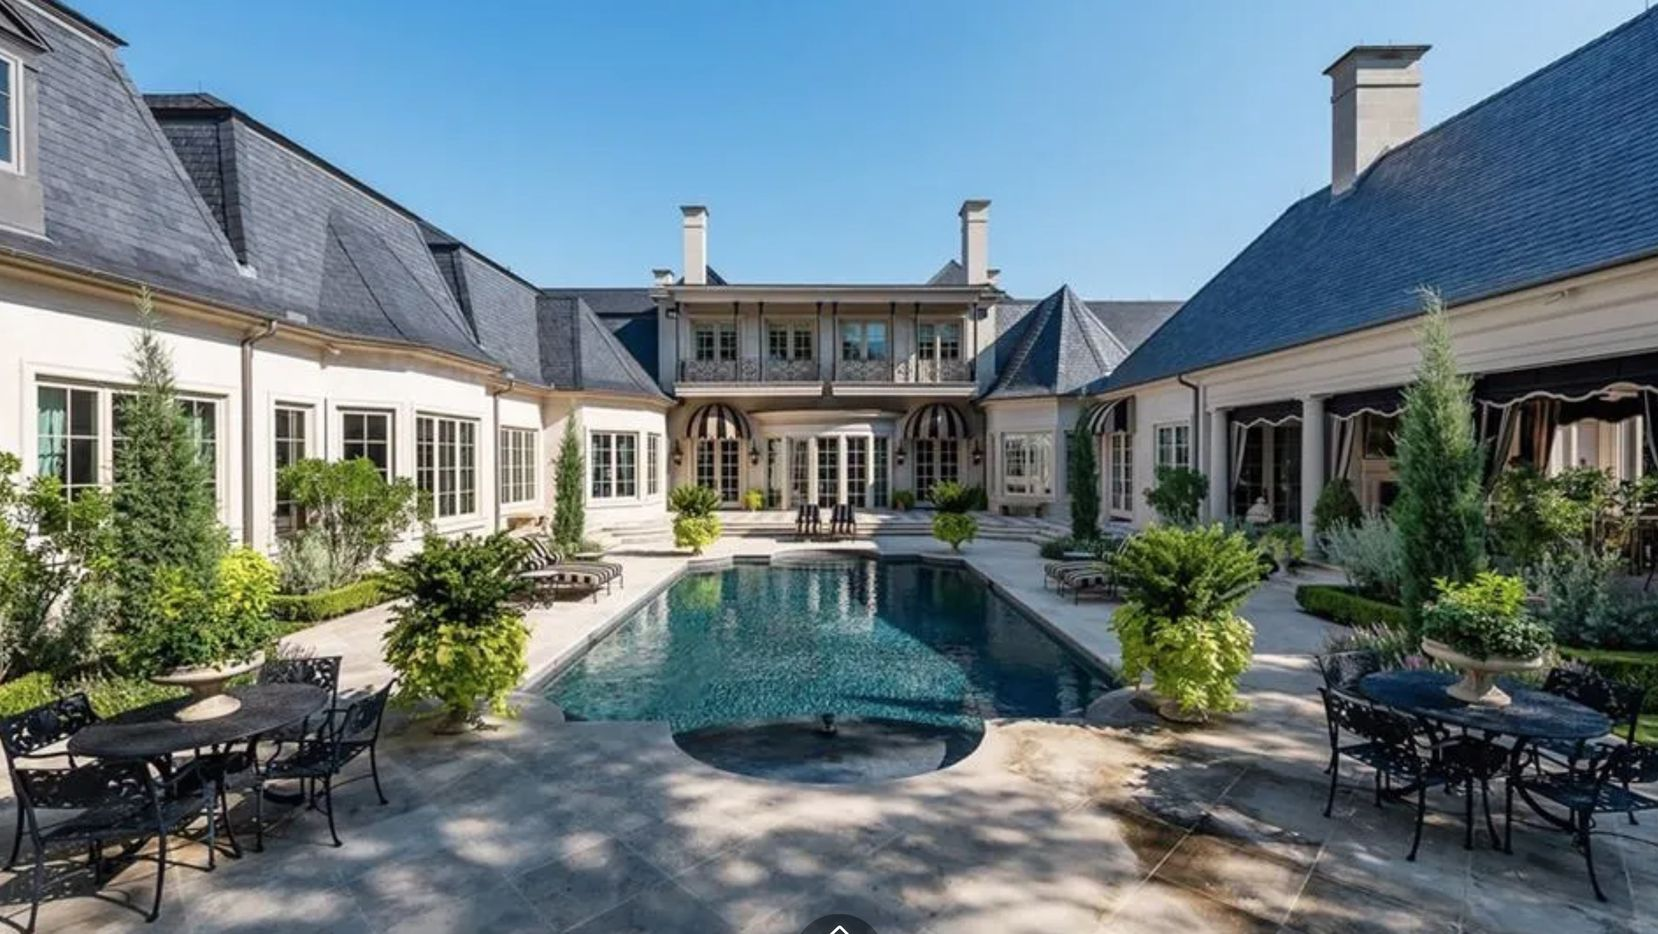 The house has a resort style pool.